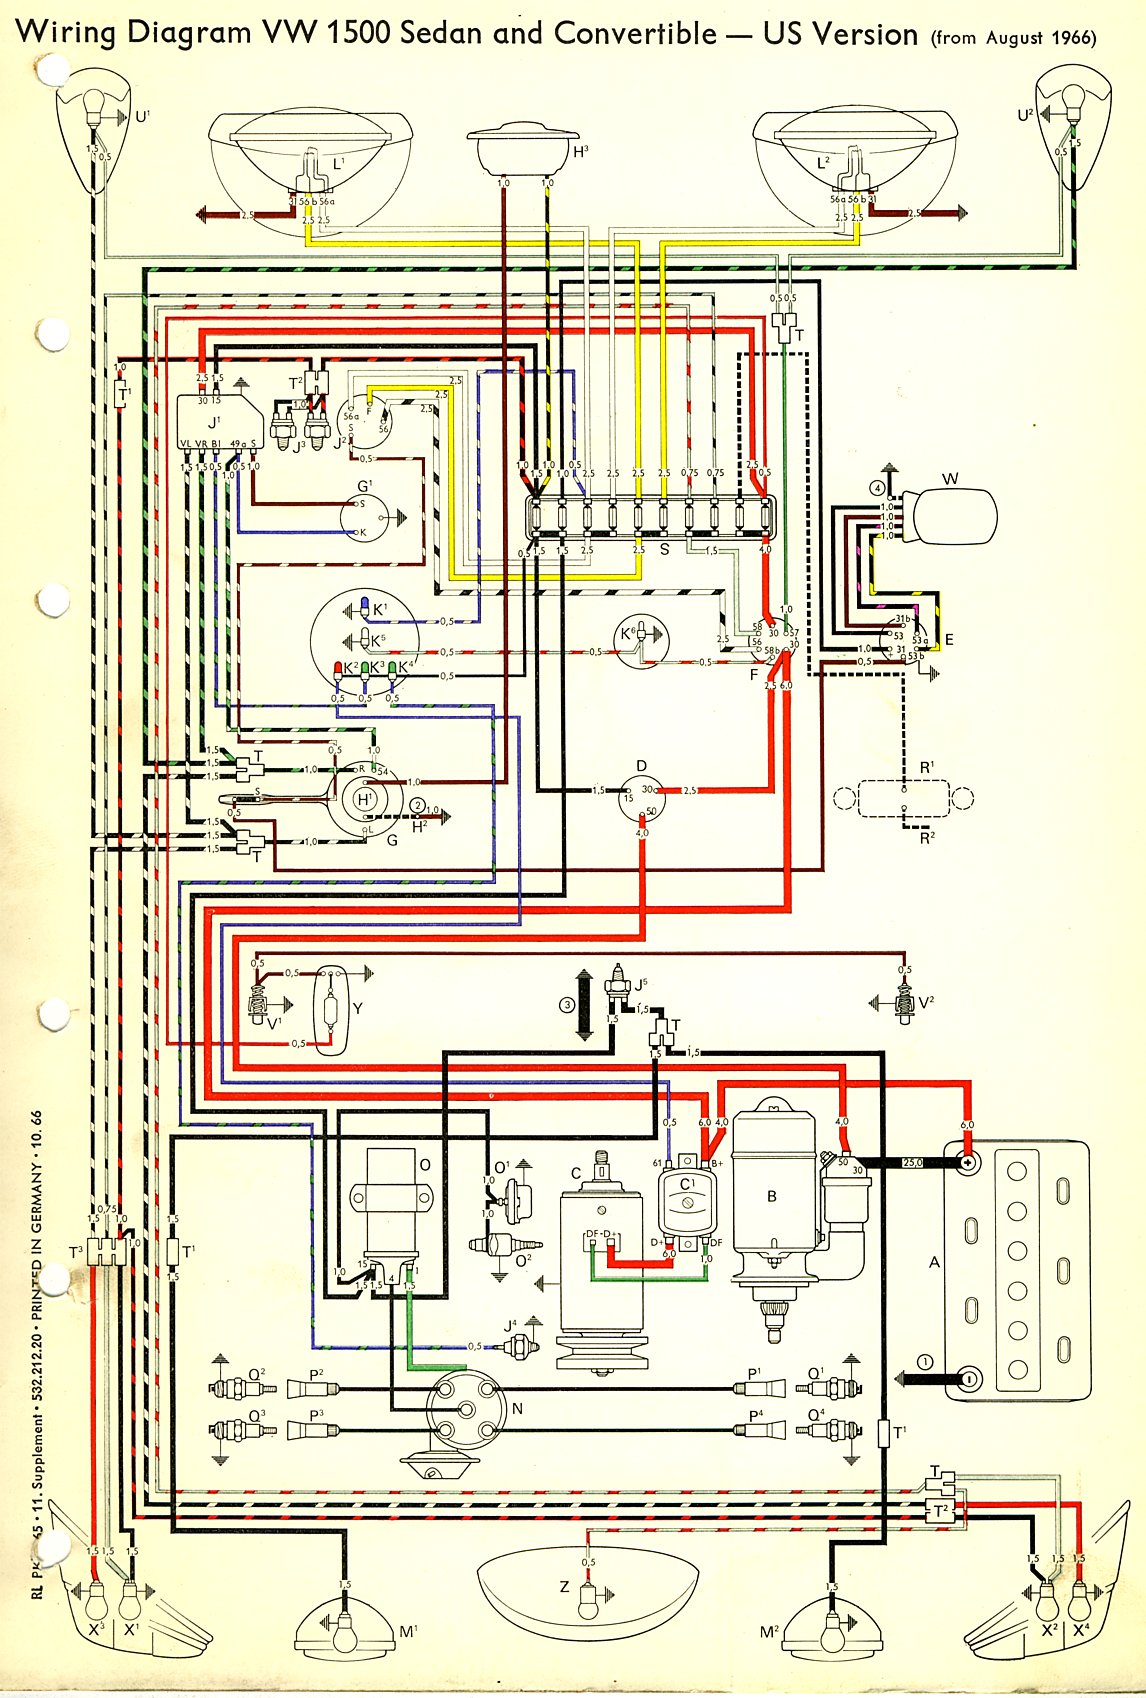 thesamba com type 1 wiring diagrams rh thesamba com 1976 VW Beetle Wiring Diagram 1971 VW Super Beetle Wiring Diagram